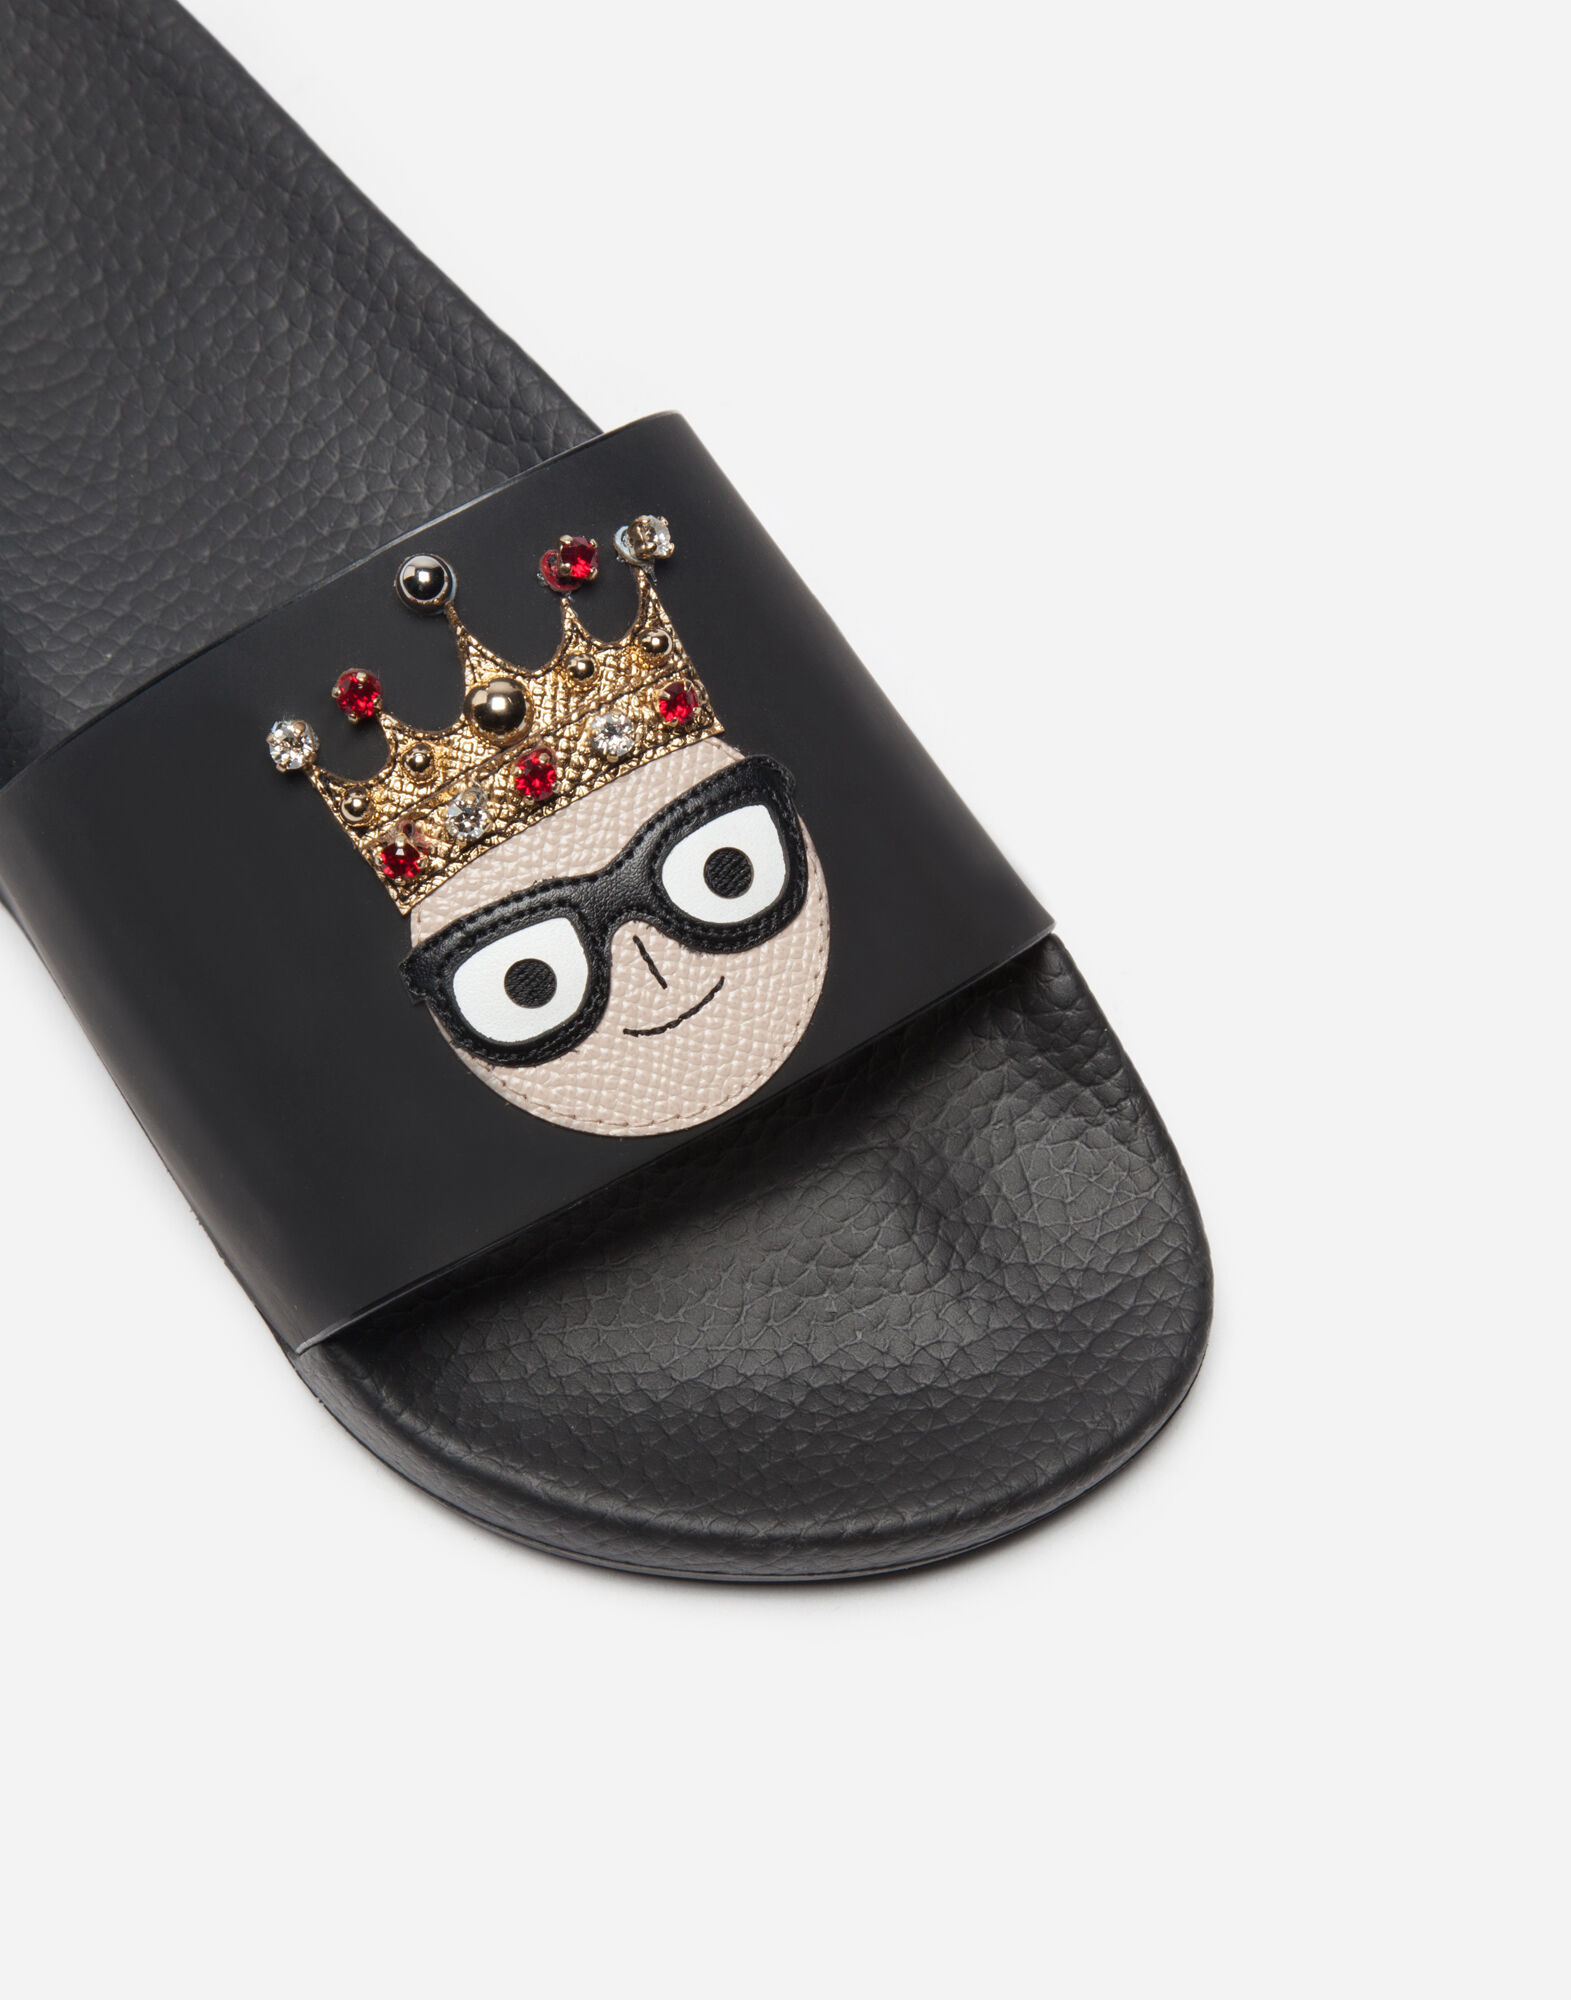 LEATHER SANDALS WITH PATCHES OF THE DESIGNERS